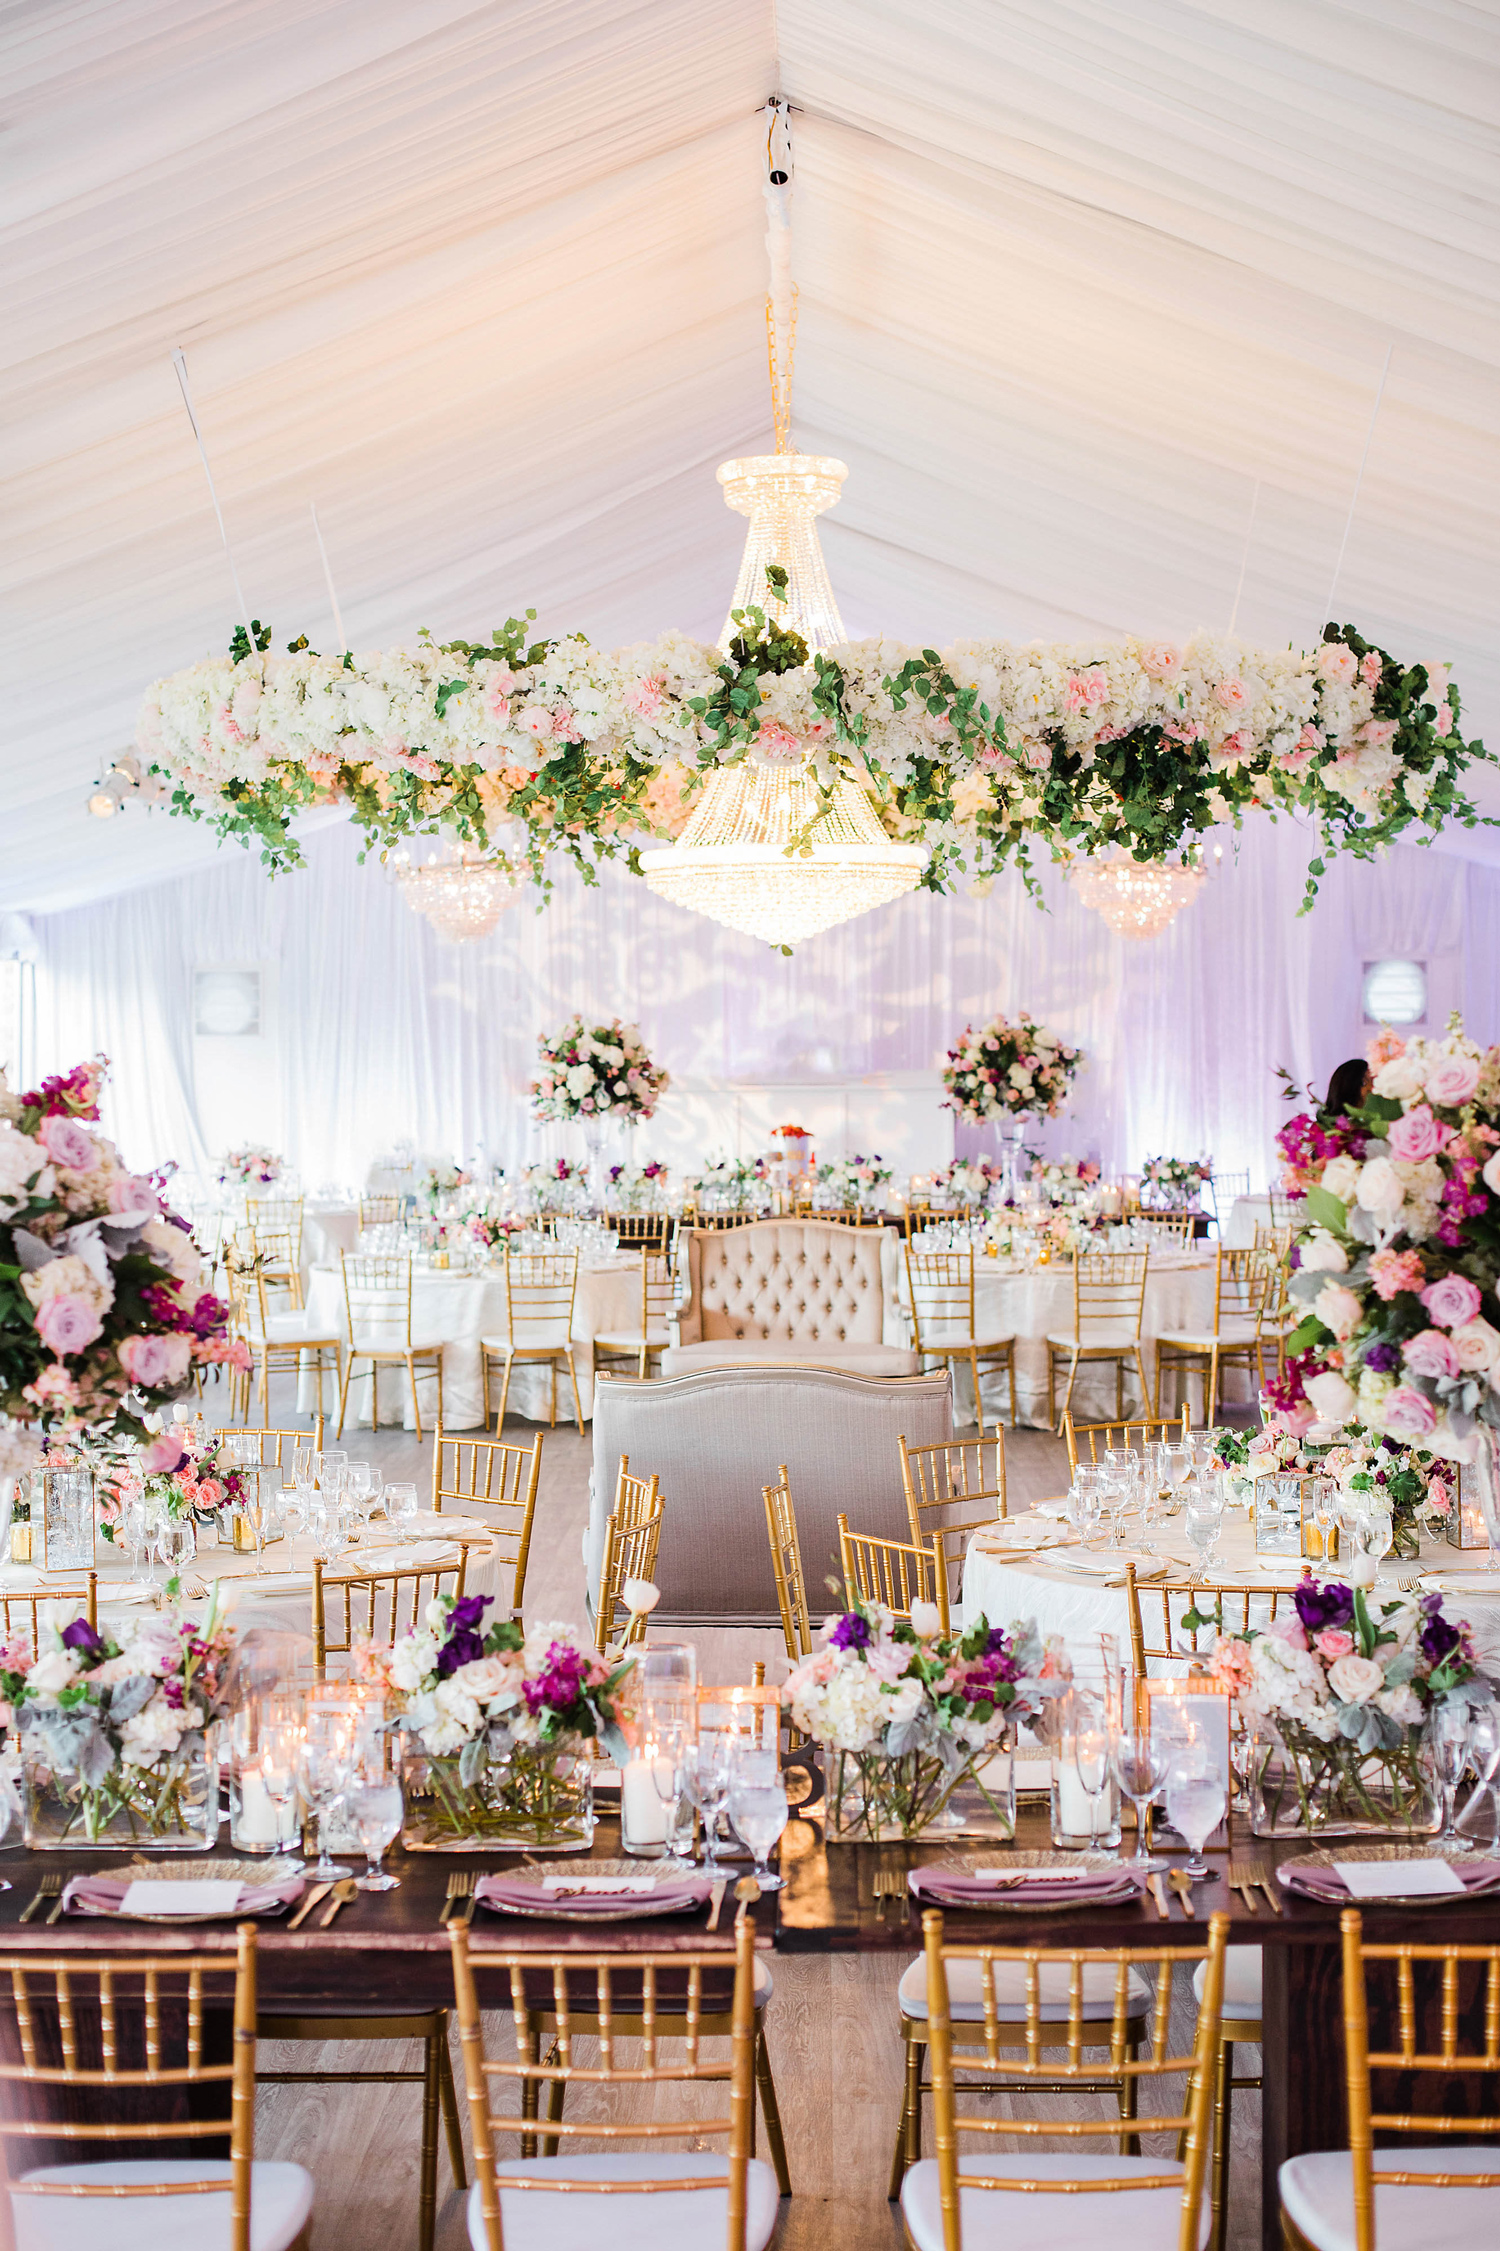 white tent wedding reception filled with hanging floral displays, centerpiece arrangements, and white and dinning furniture